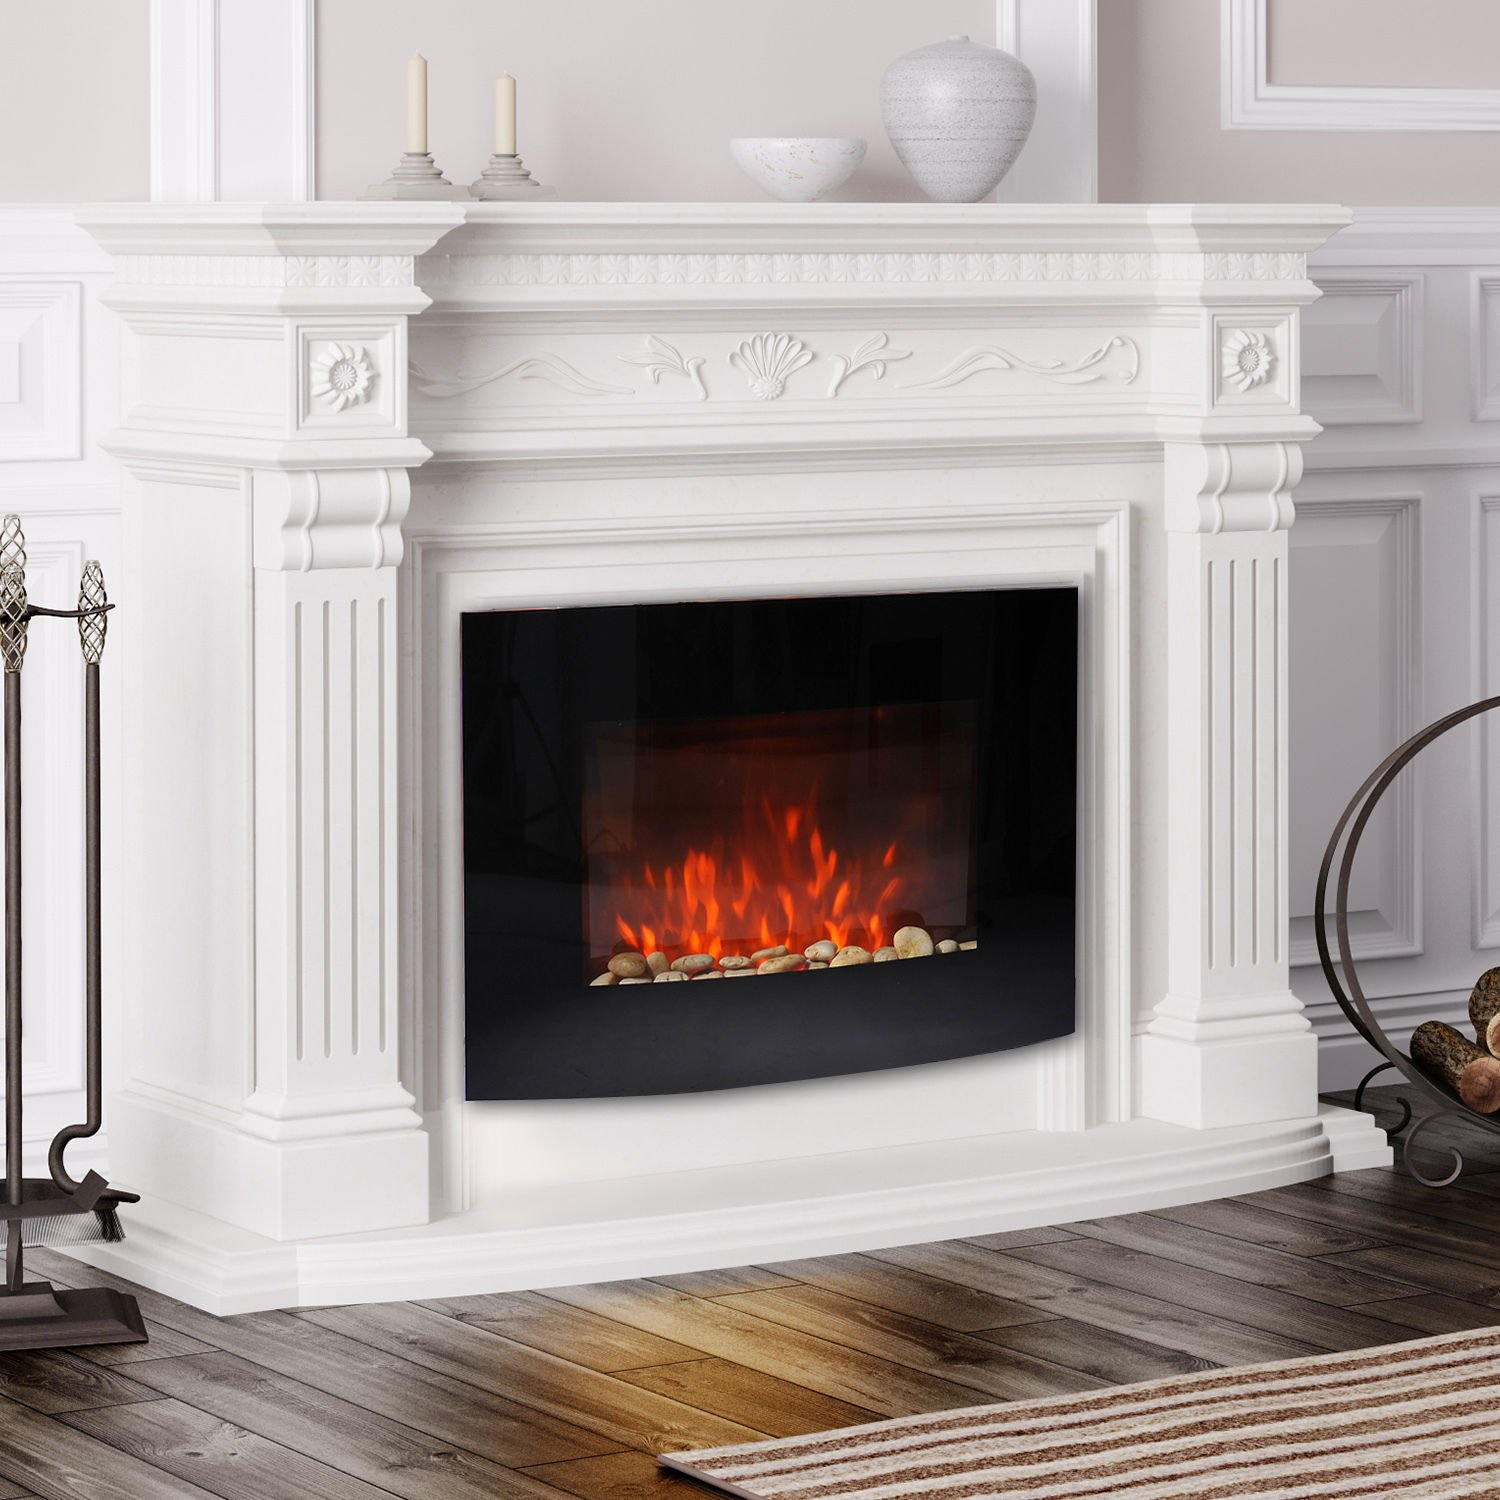 Electric LED Curved Glass Wall Mounted Fireplace – Ideal ...